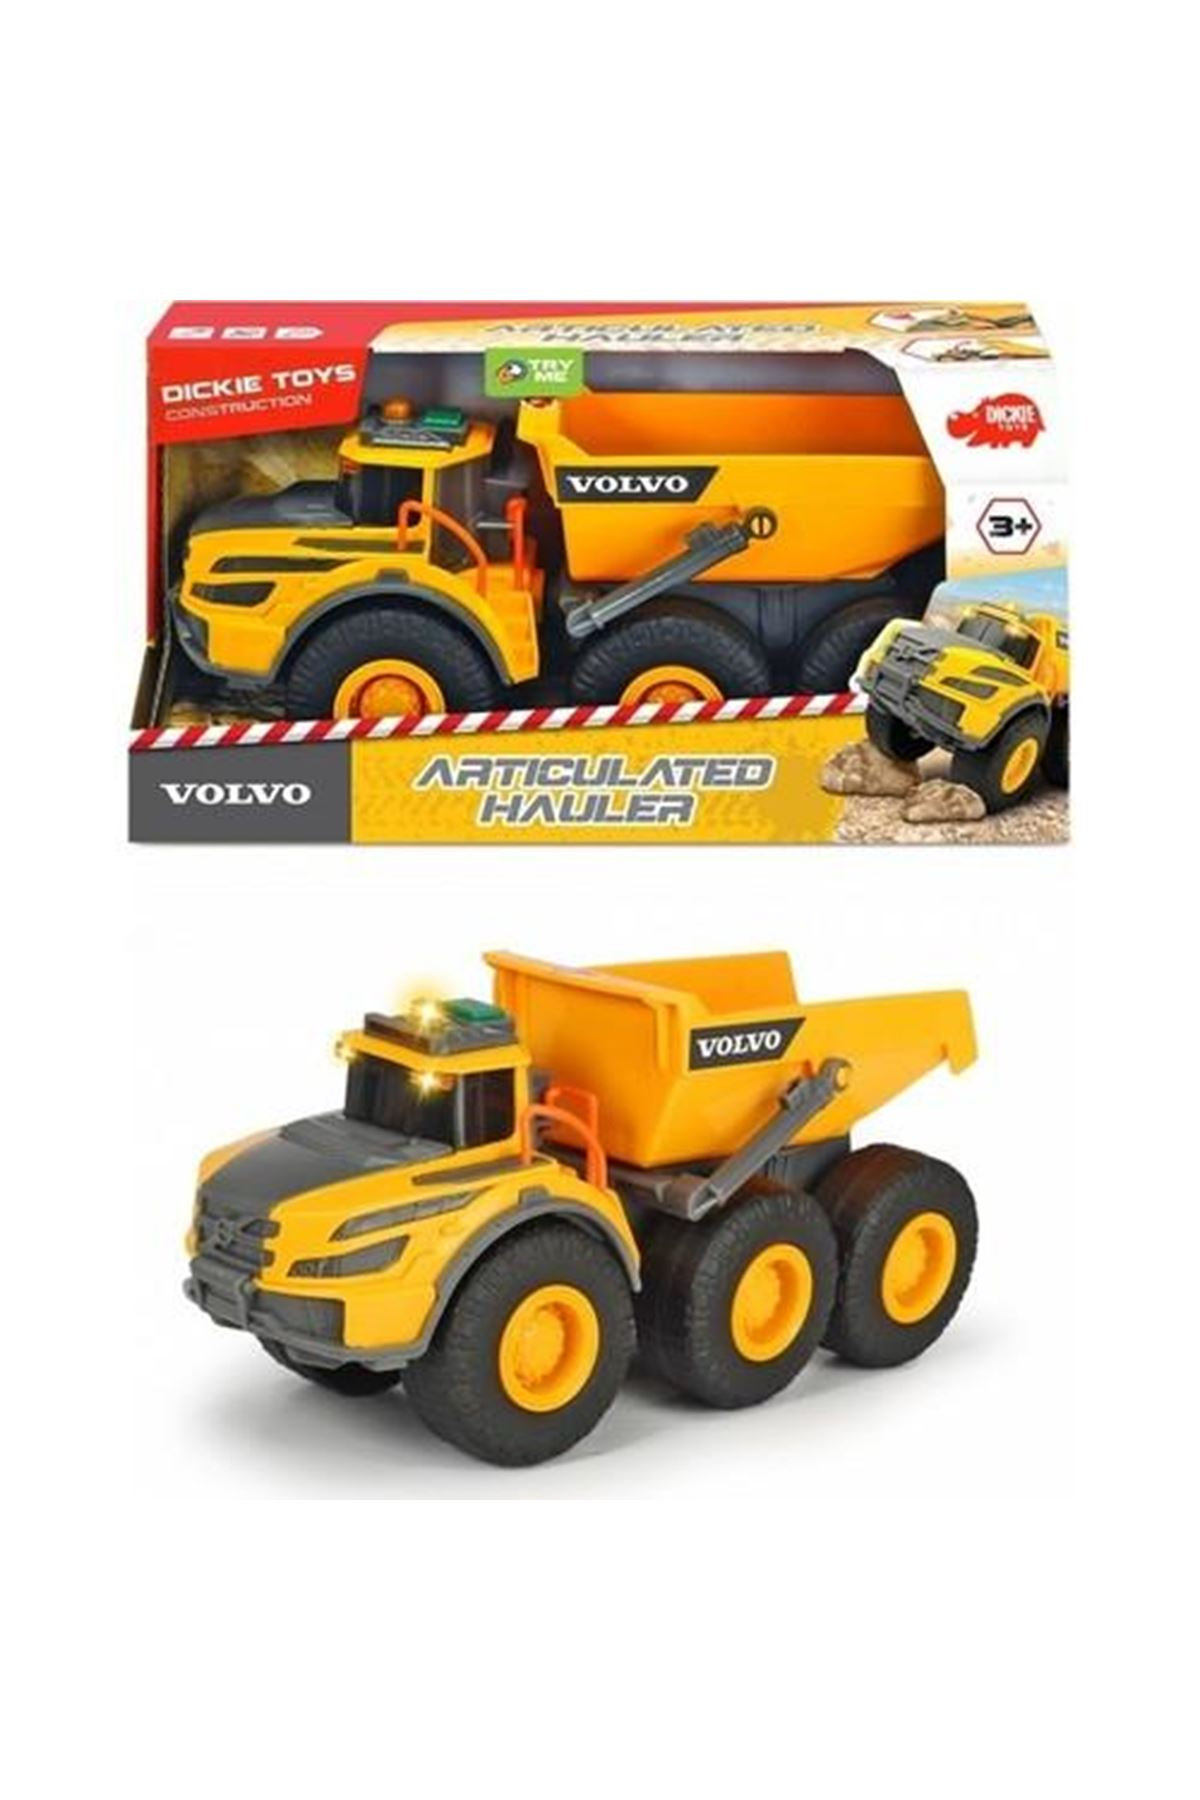 Dickie Toys Volvo Artıculated Hauler 3004